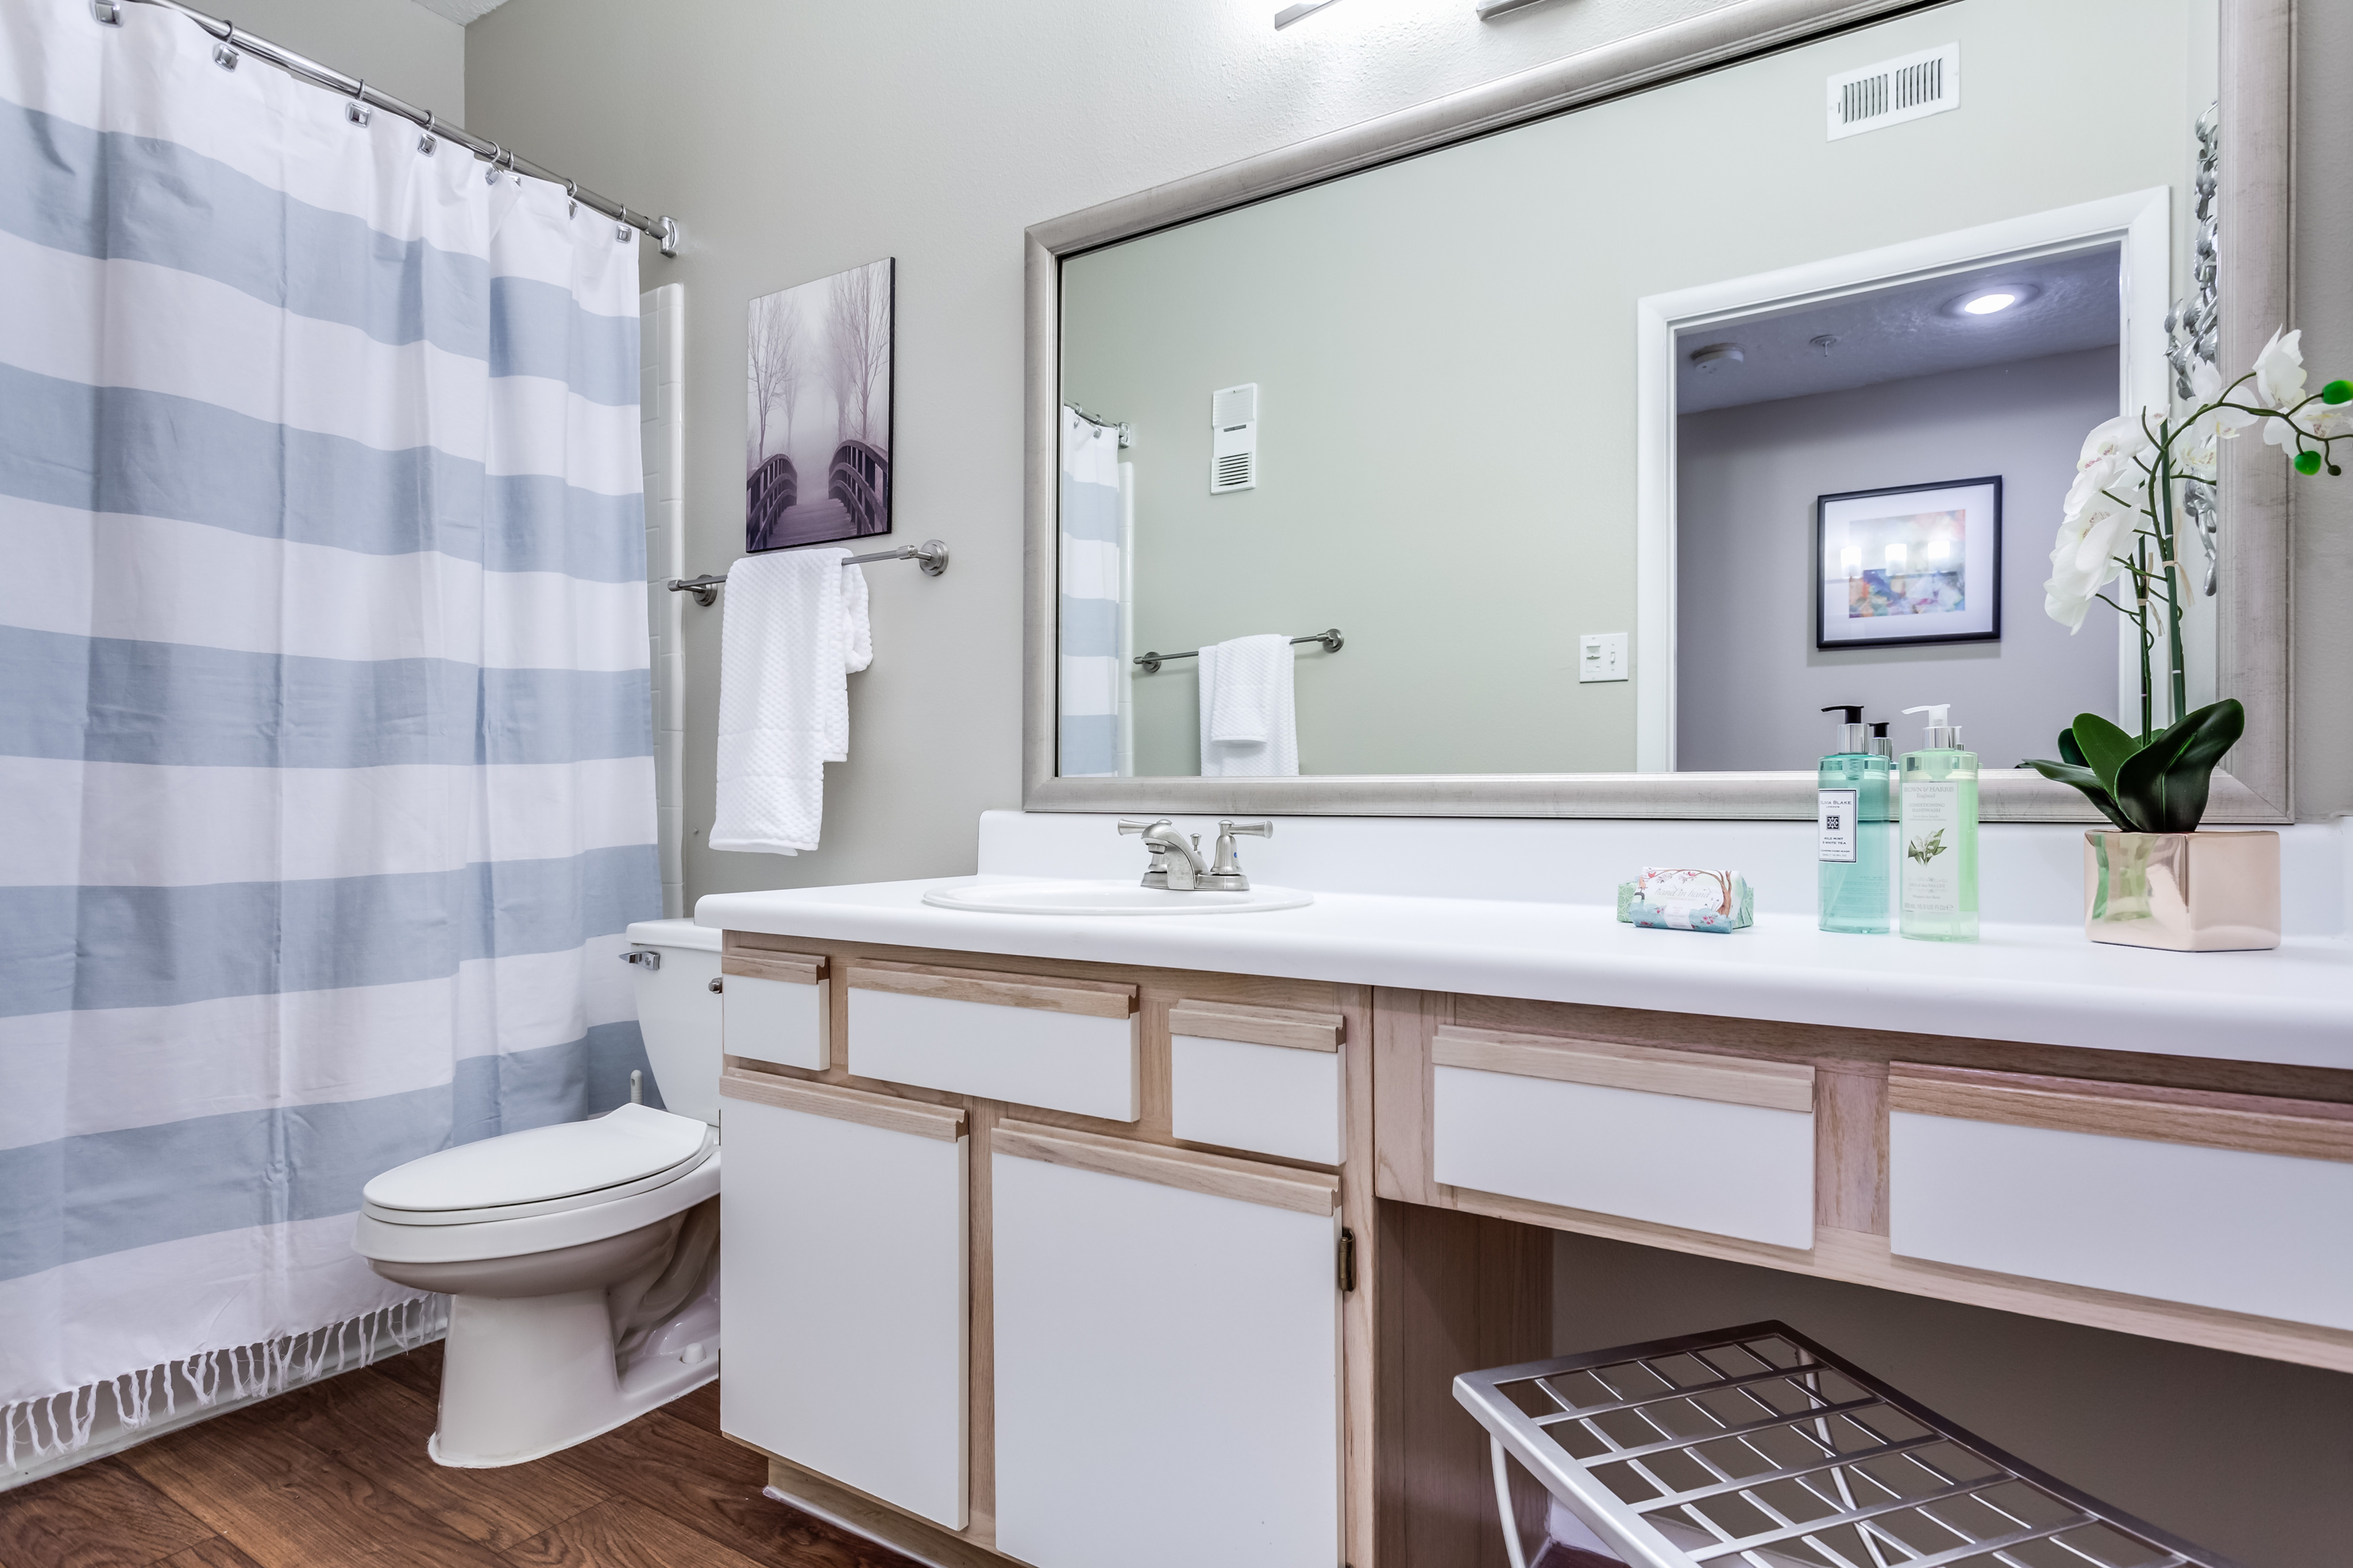 View of Classic Apartment Interior, Showing Bathroom with Plank Wood Flooring and Single Vanity at Waterford Creek Apartments